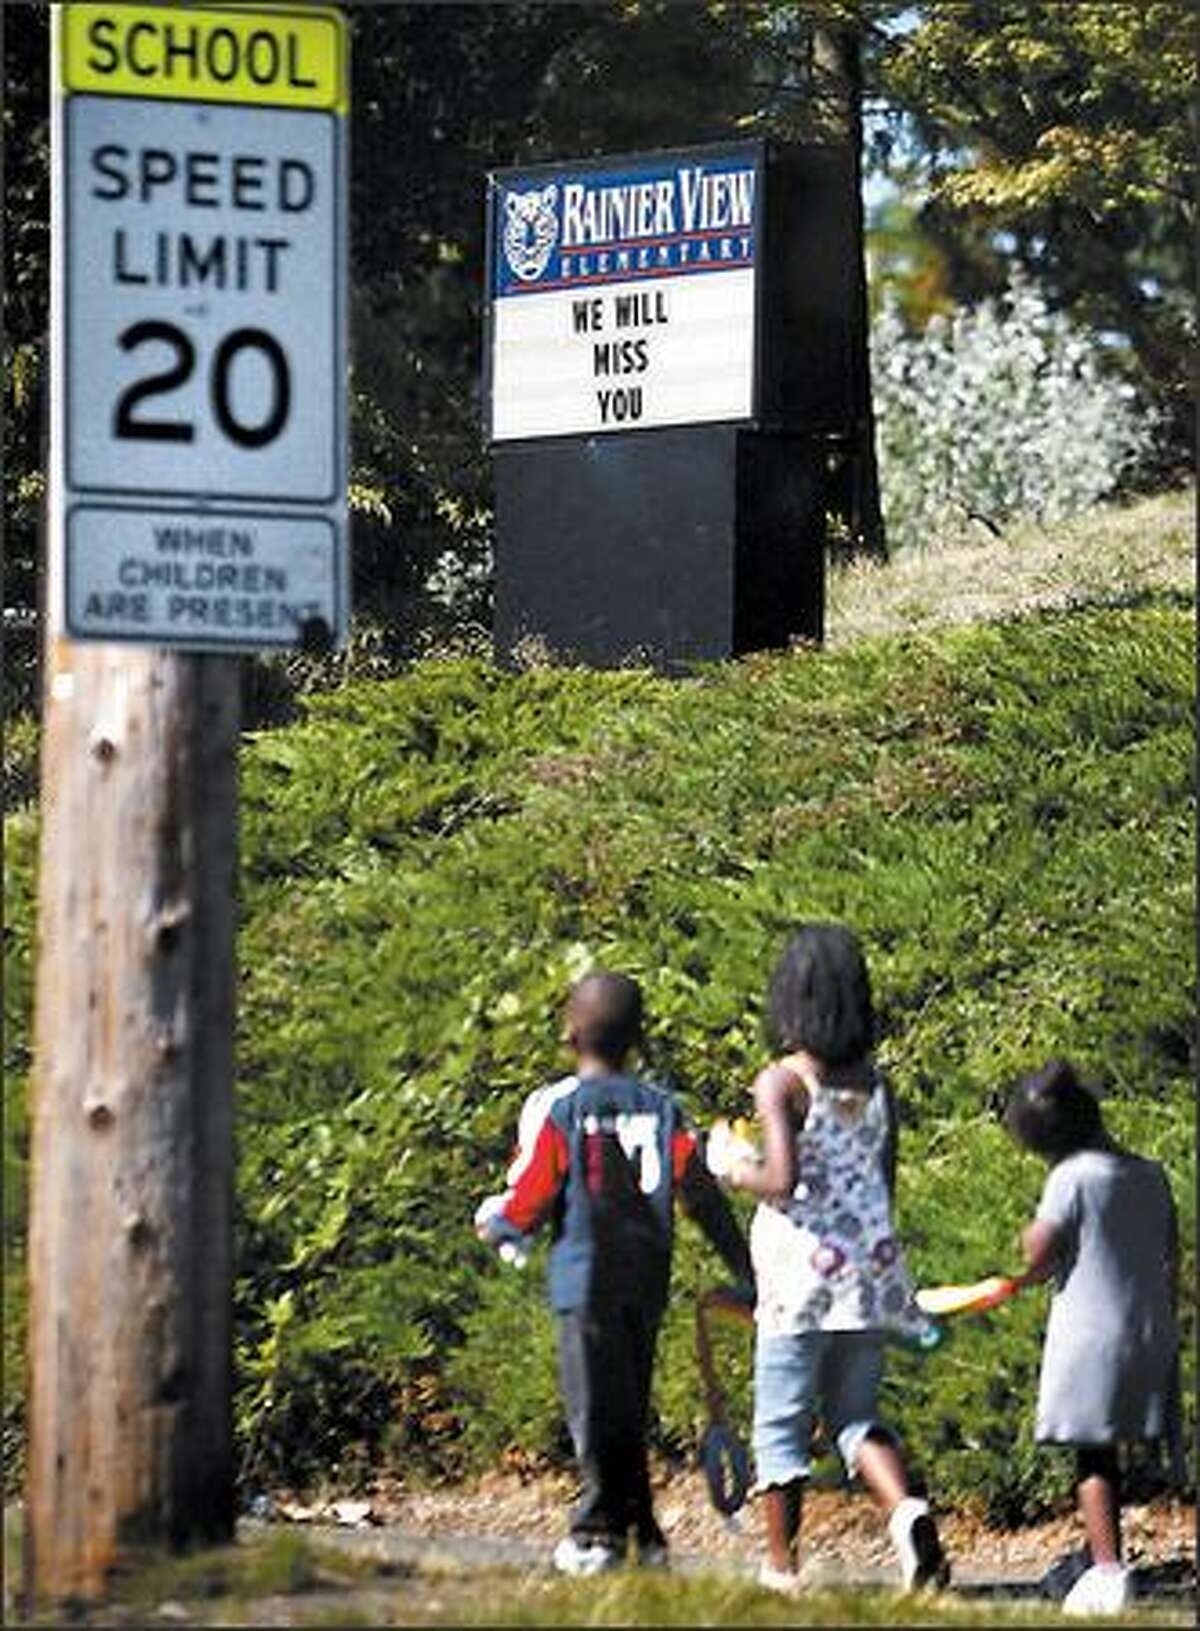 Children walk by Rainier View Elementary on Thursday. Neighbors worry the closed school could become a magnet for crime.